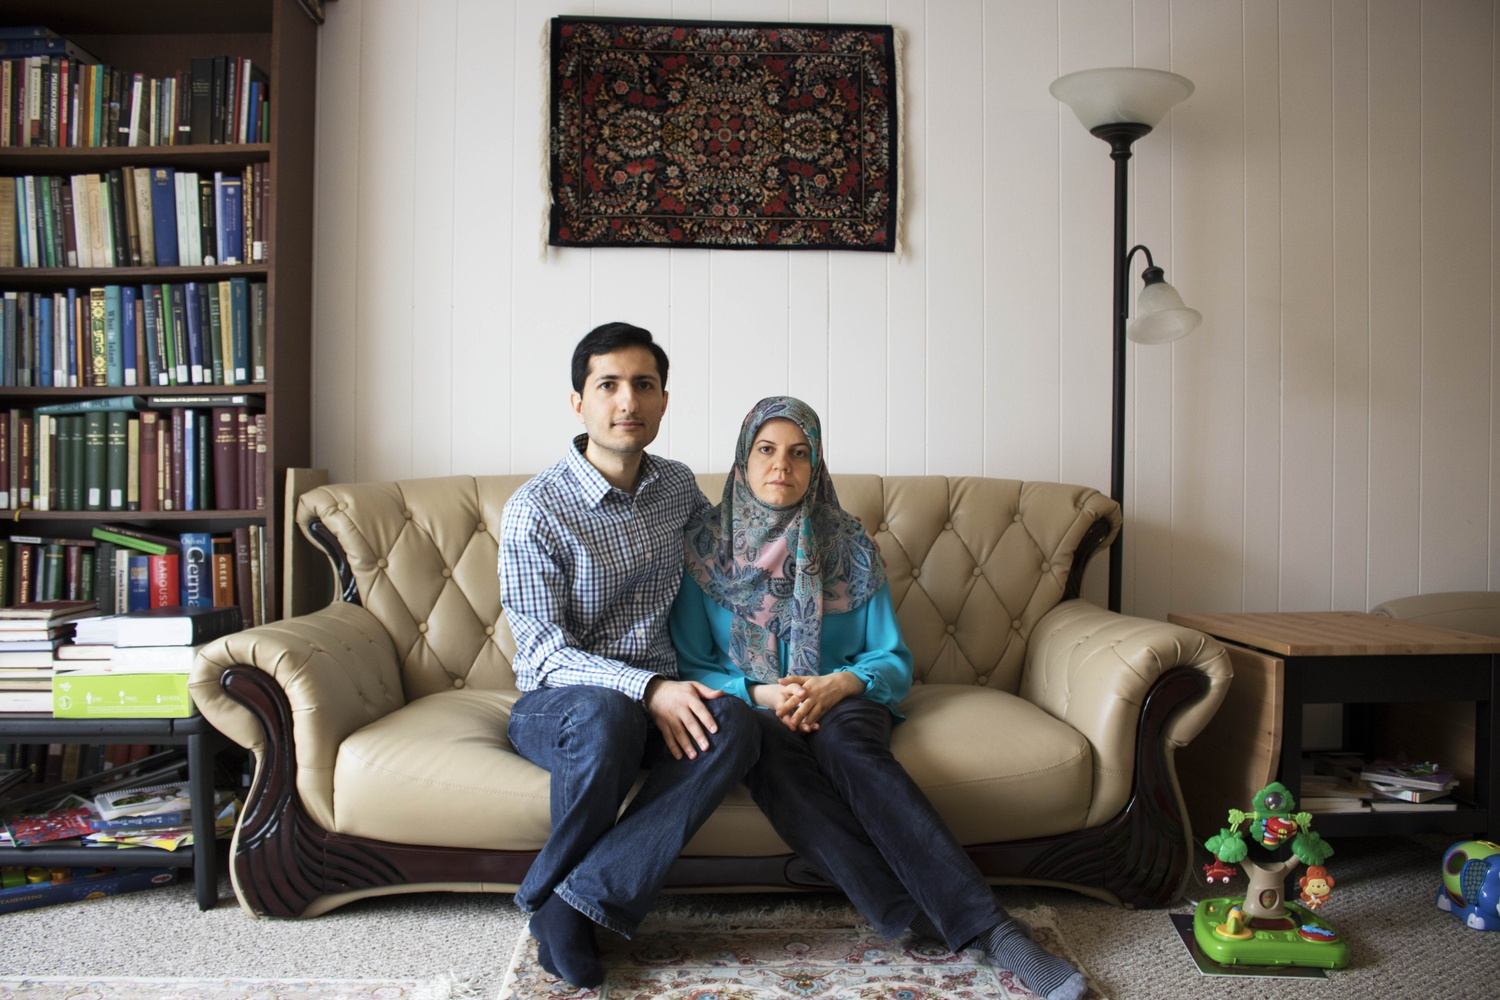 Mohsen Goudarzi and Narges Afshordi